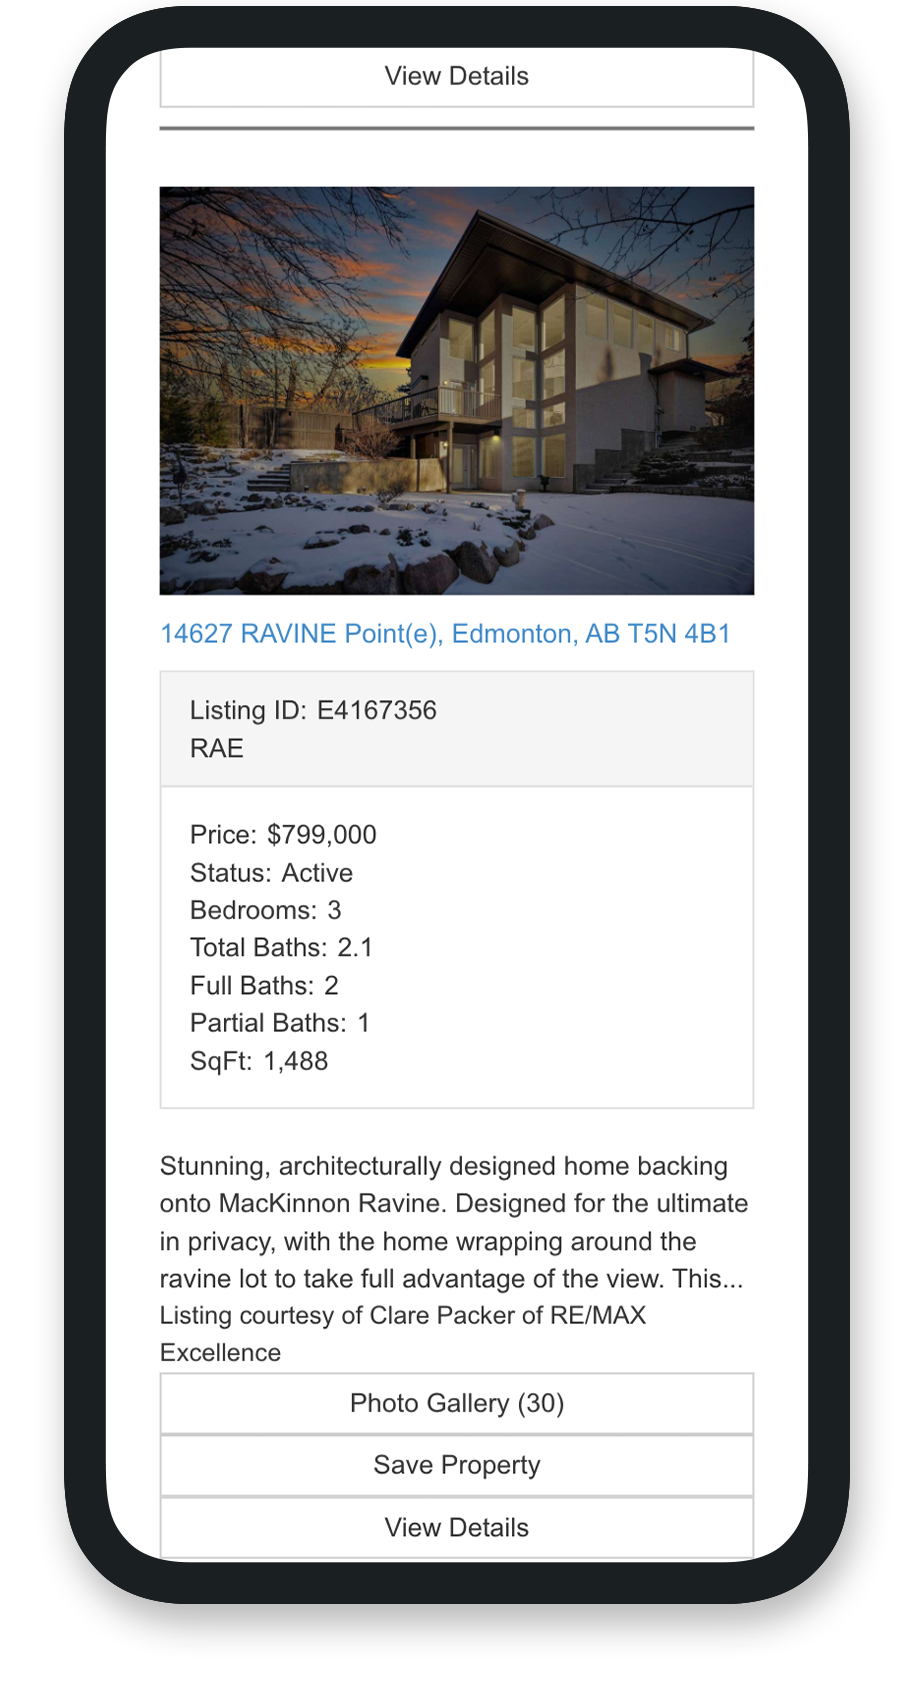 Search results page for Alanna Dawley's real estate website in mobile view.